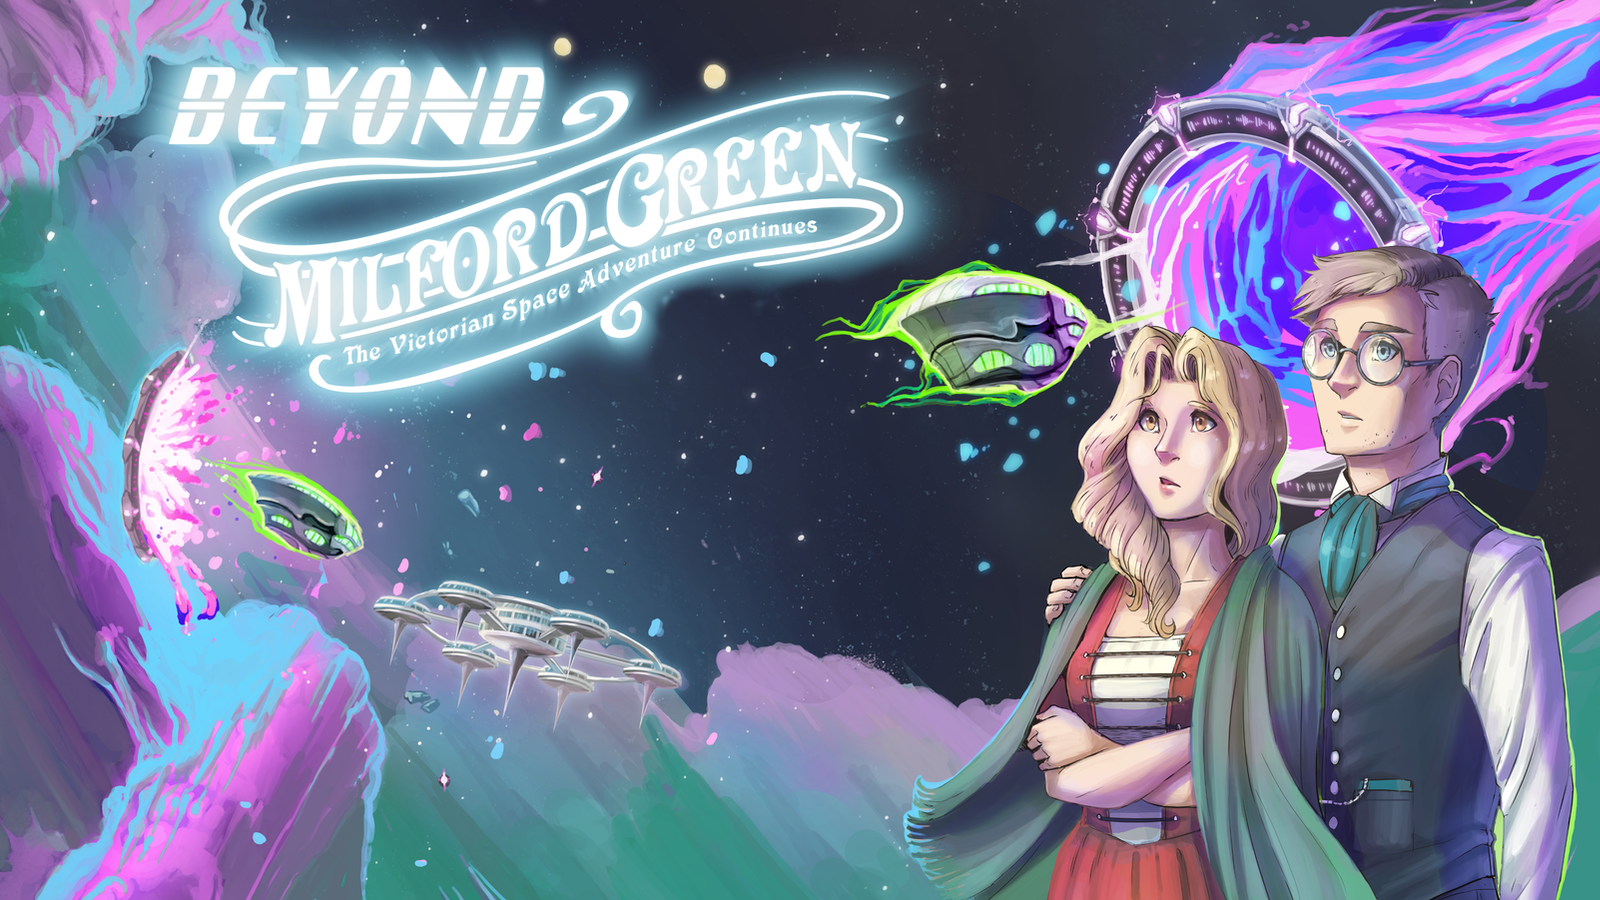 Beyond Milford Green | A Victorian Space Adventure Comic